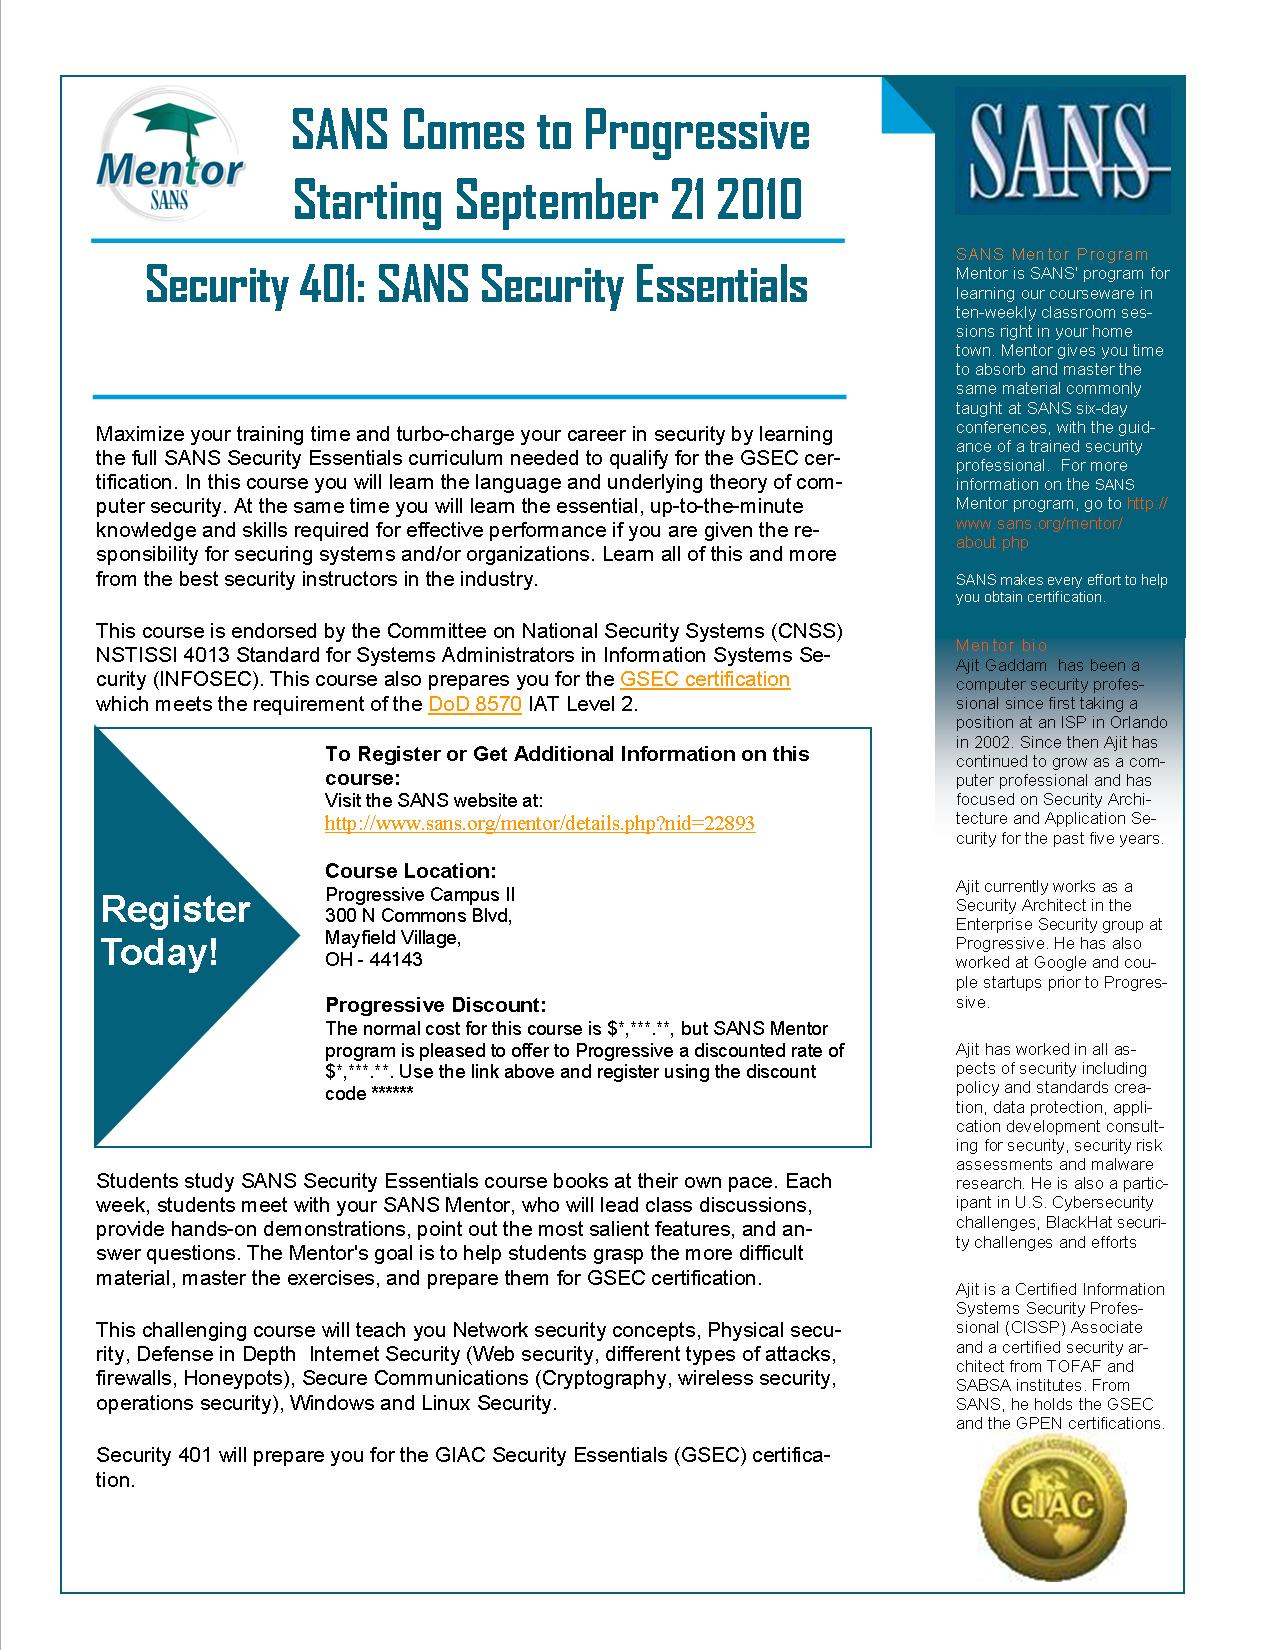 Mentoring the sans 401 security essentials class ajit gaddam ajit gaddam sans mentor promotion flyer xflitez Images